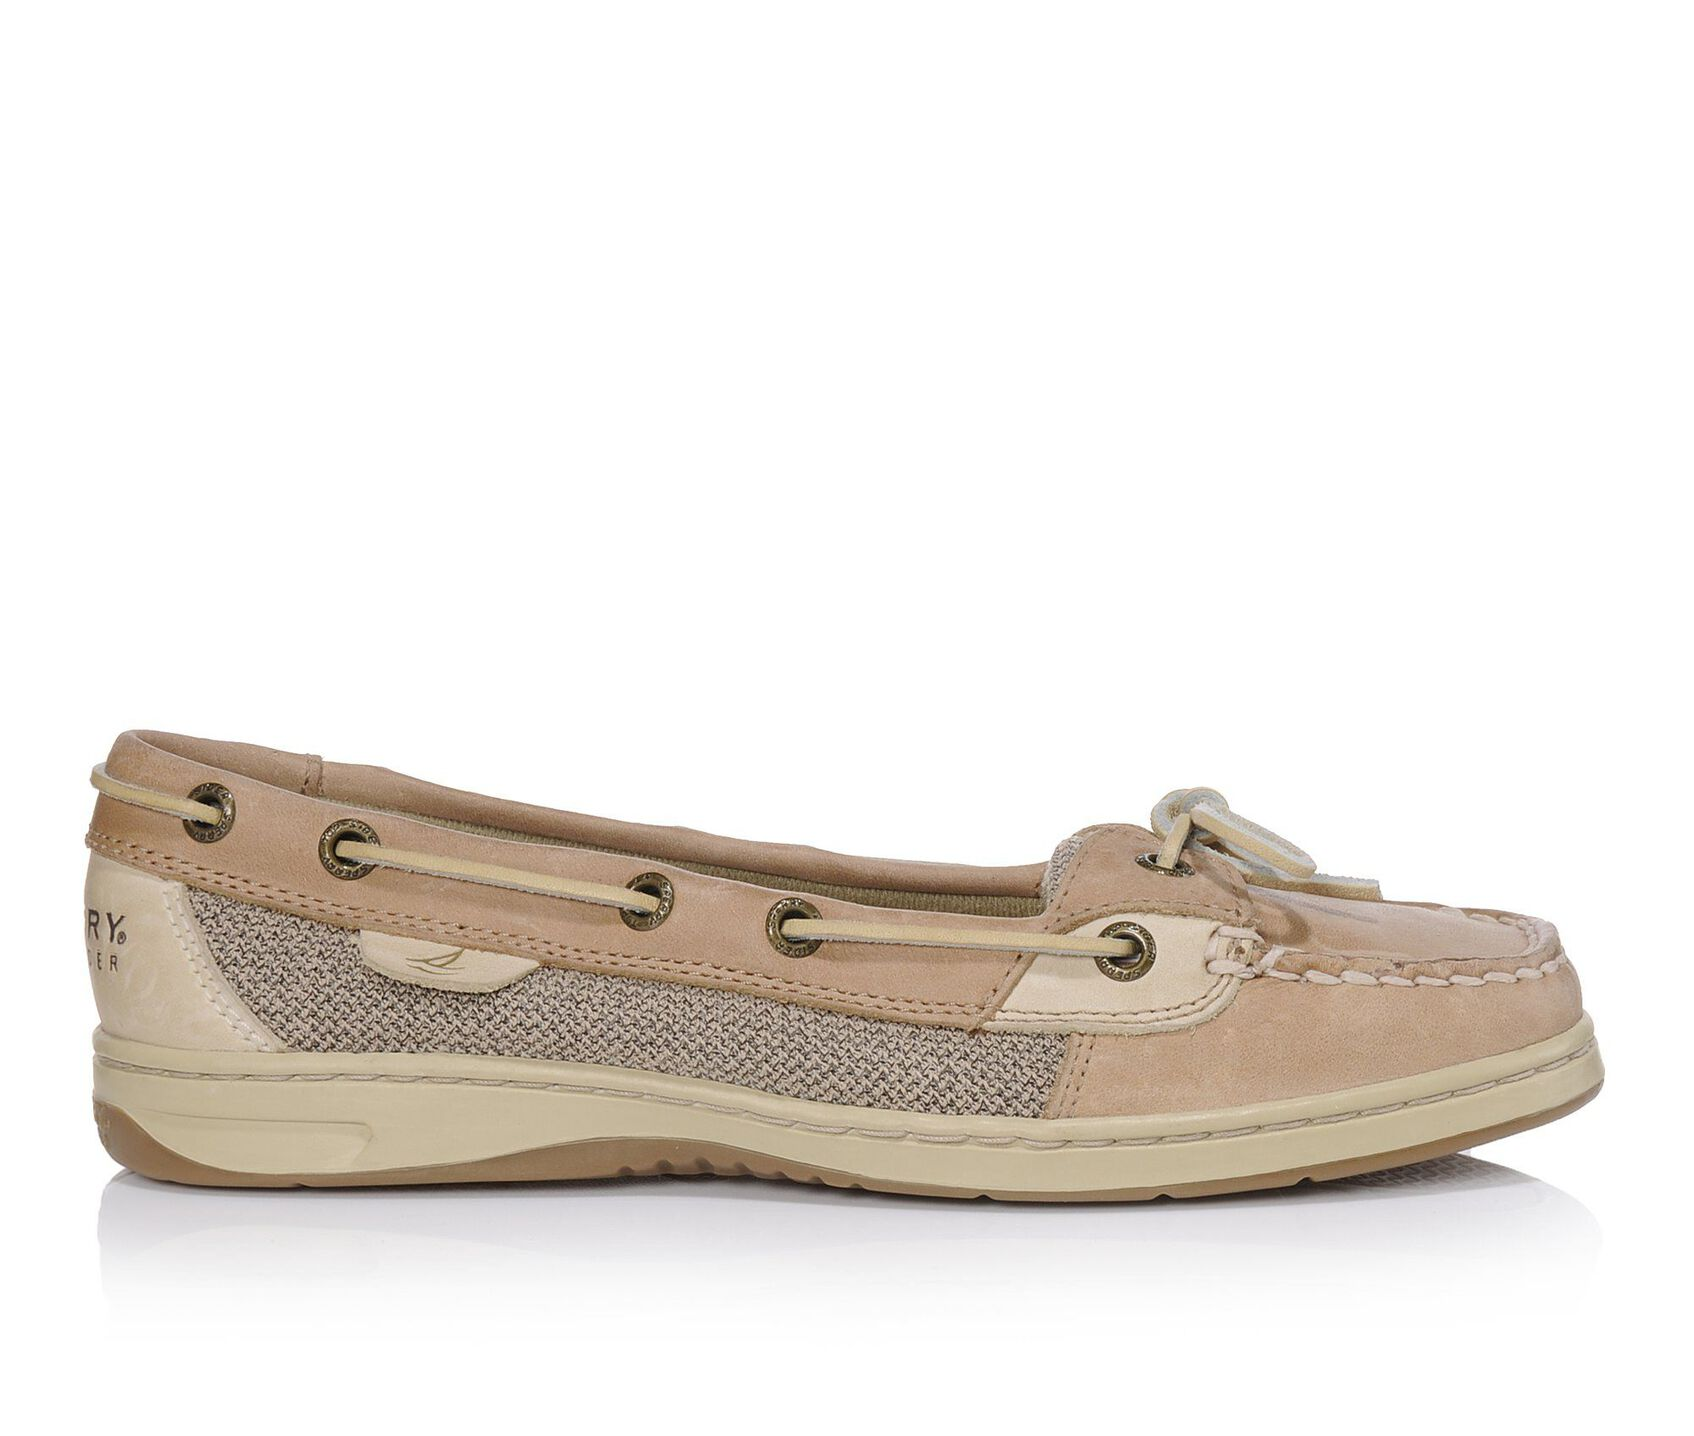 ... Sperry Angelfish Boat Shoes. Previous 0e4a312af7b